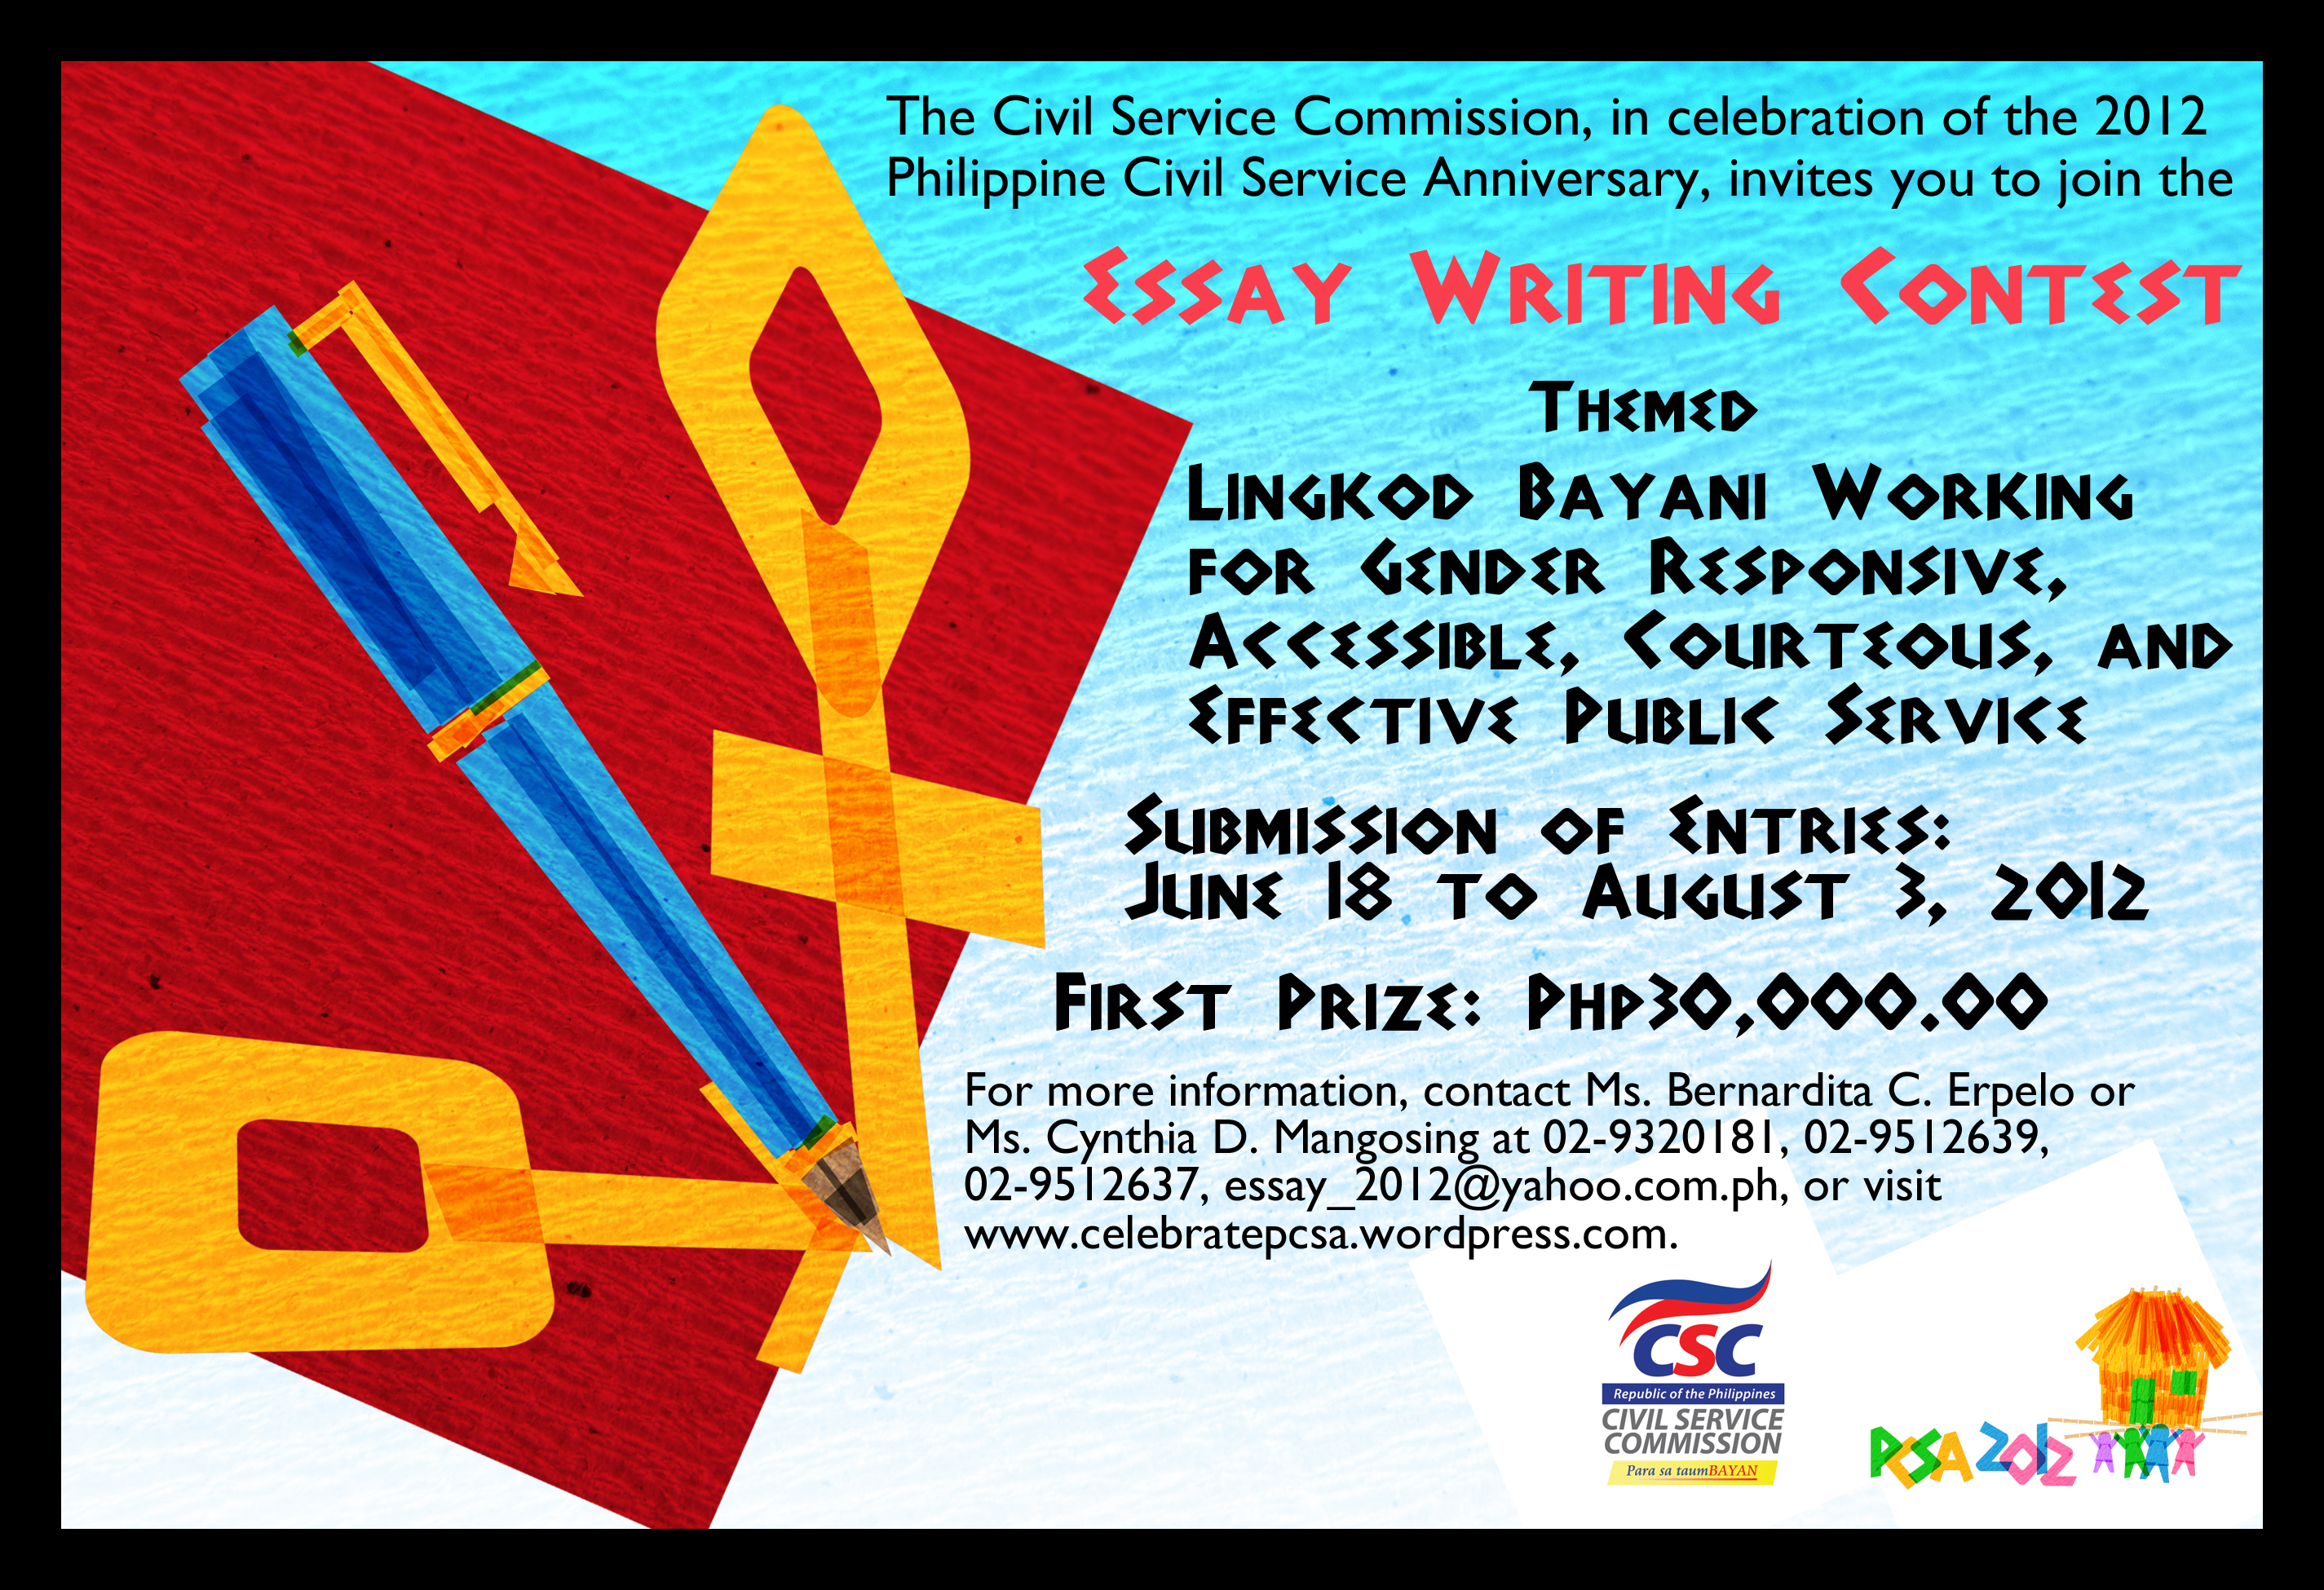 002 Essay Writing Contest 2012pcsa Flyer Kubo Essay3 Incredible Competition For College Students By Essayhub Sample Mechanics Full